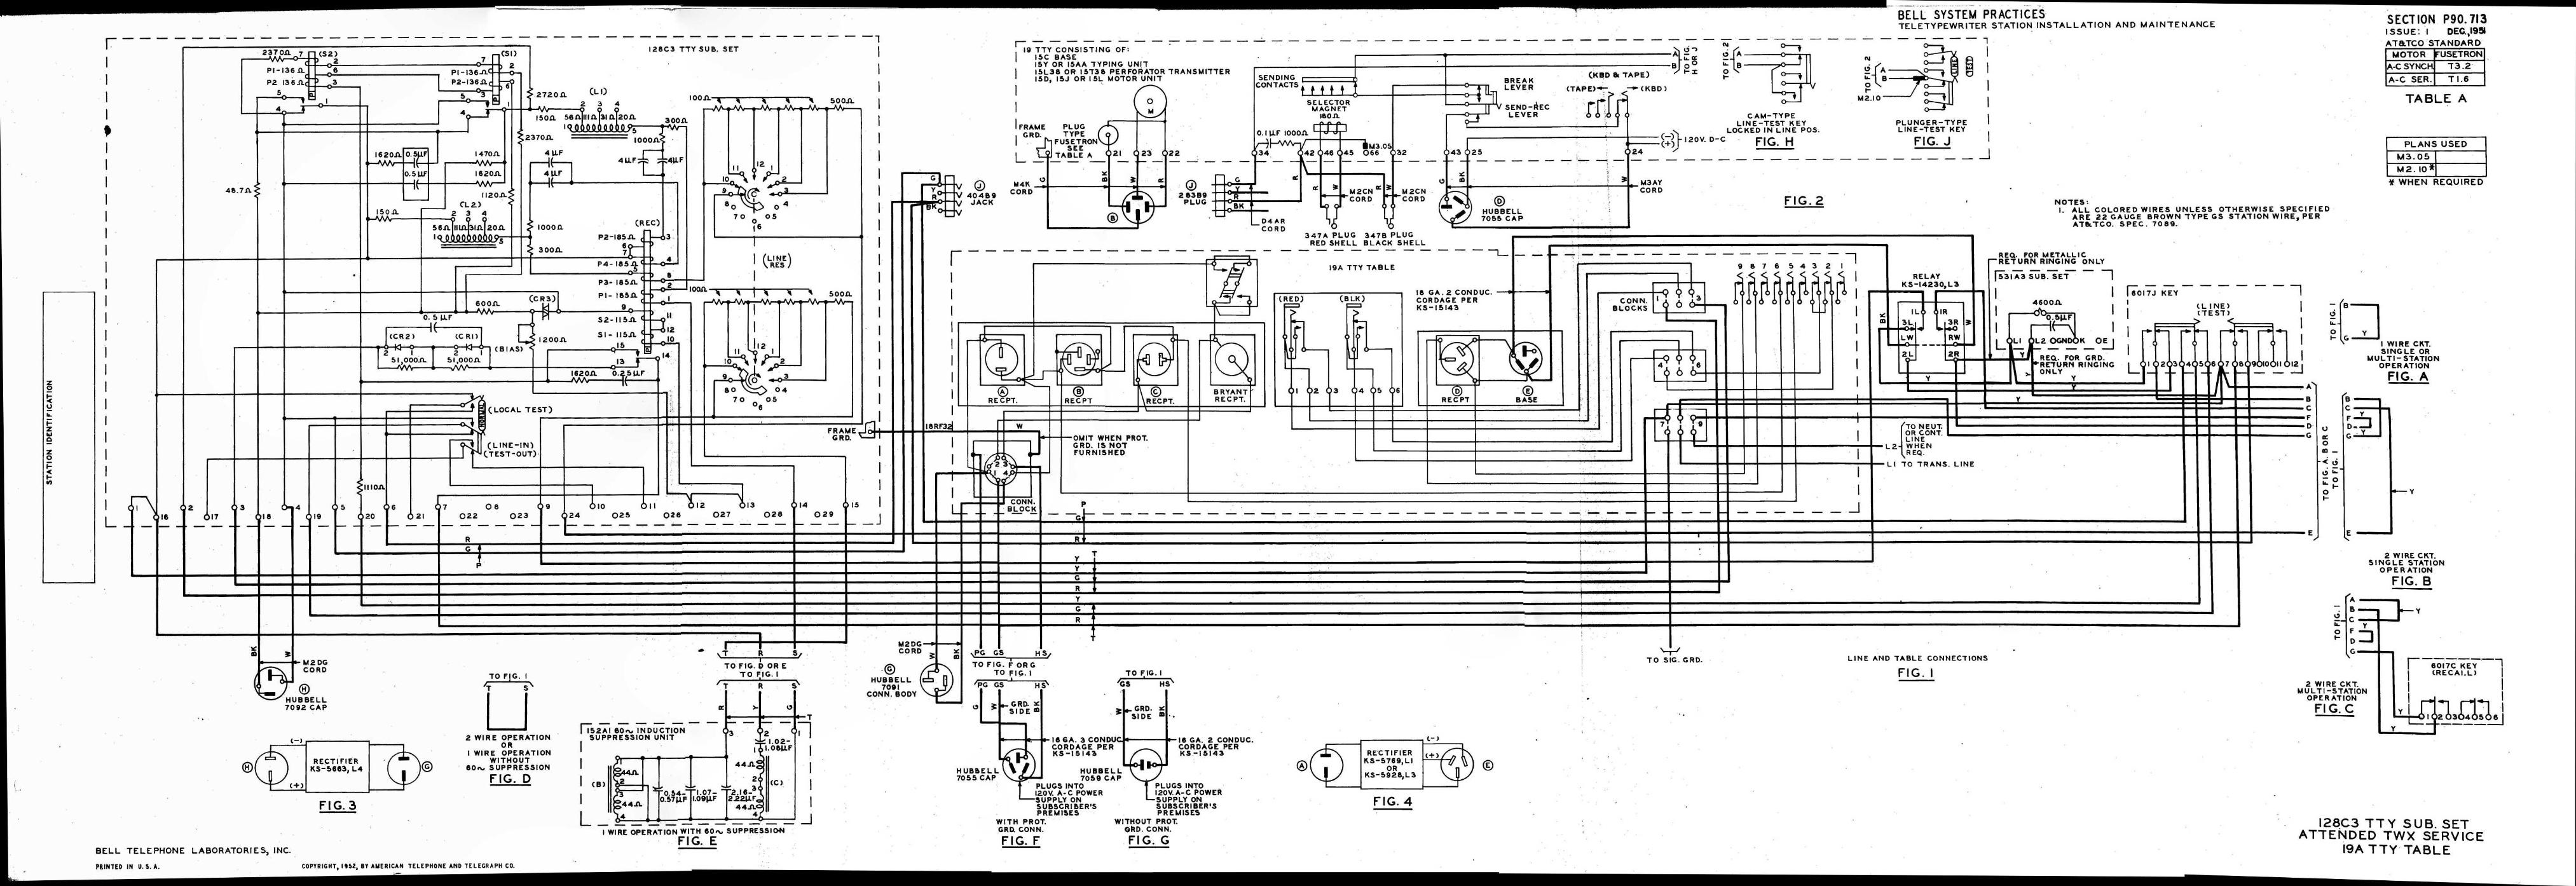 2004 texas chopper wiring diagram custom chopper wiring Iron Horse Motorcycle Wiring Diagram For Iron Horse Motorcycle Wiring Diagram For